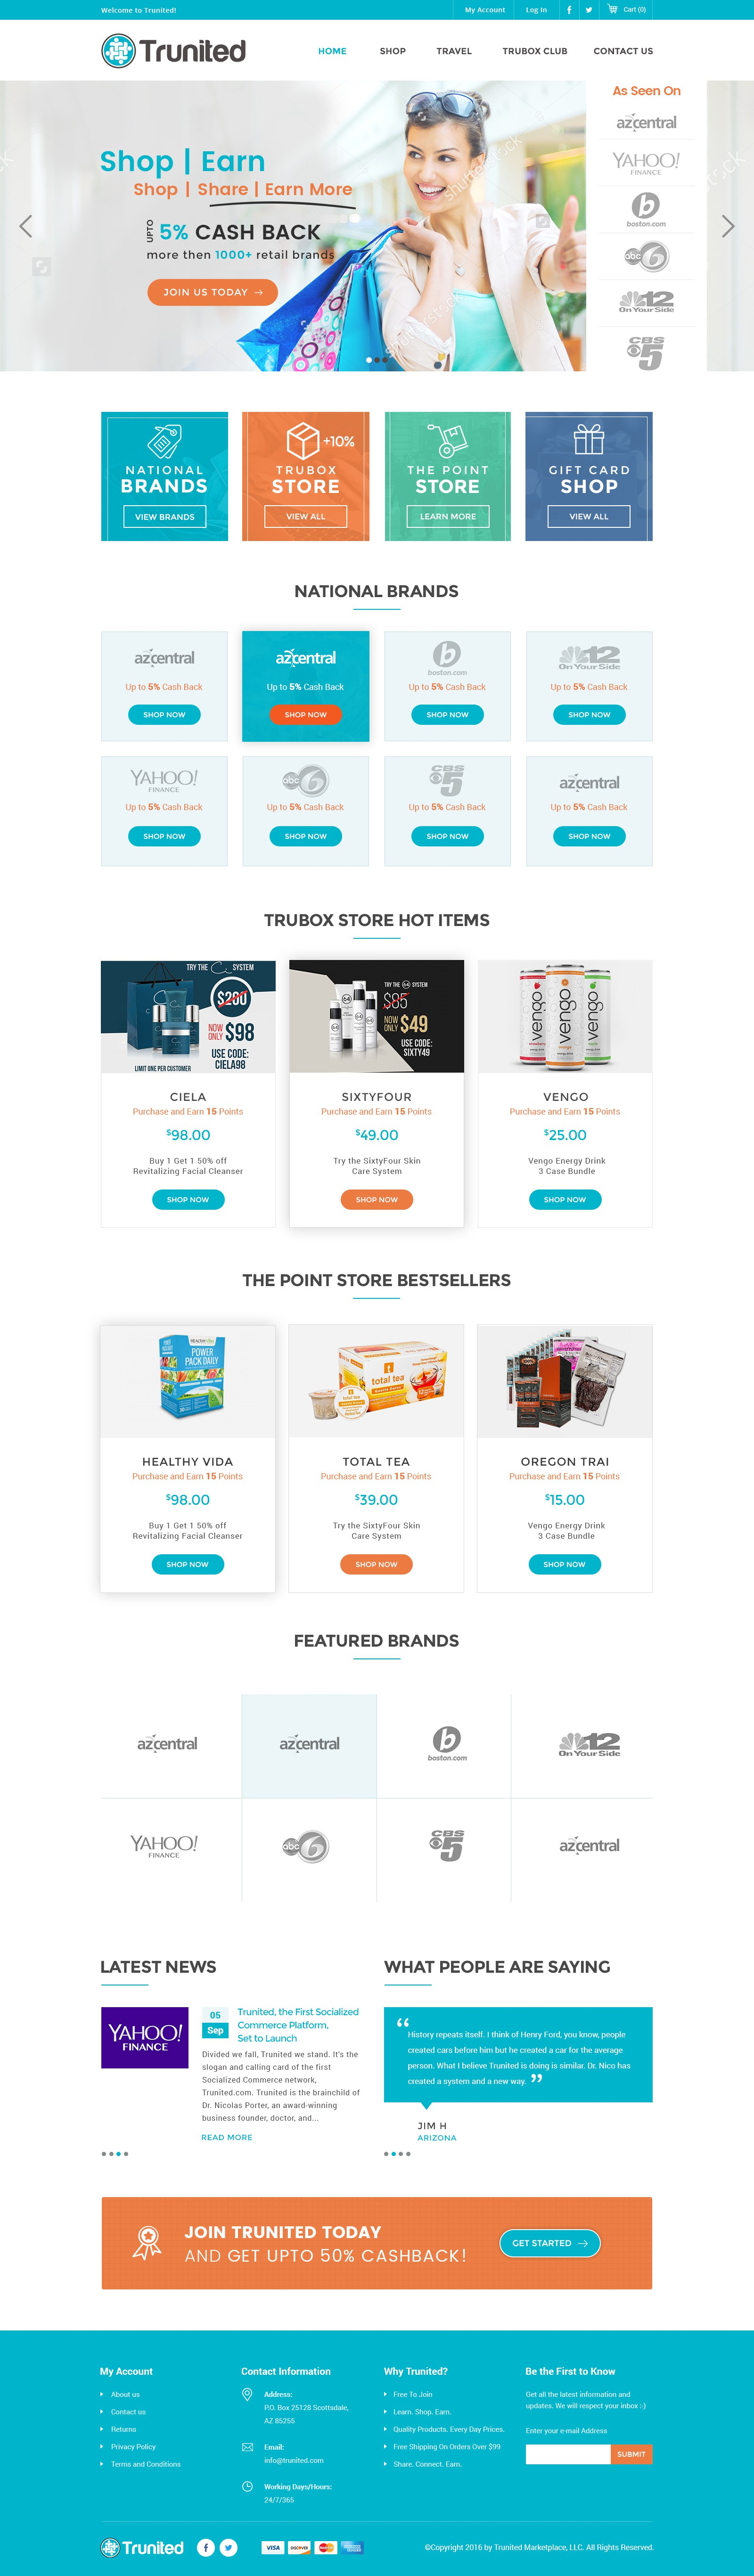 Don't Miss This - Change the Future of eCommerce - Homepage Redesign